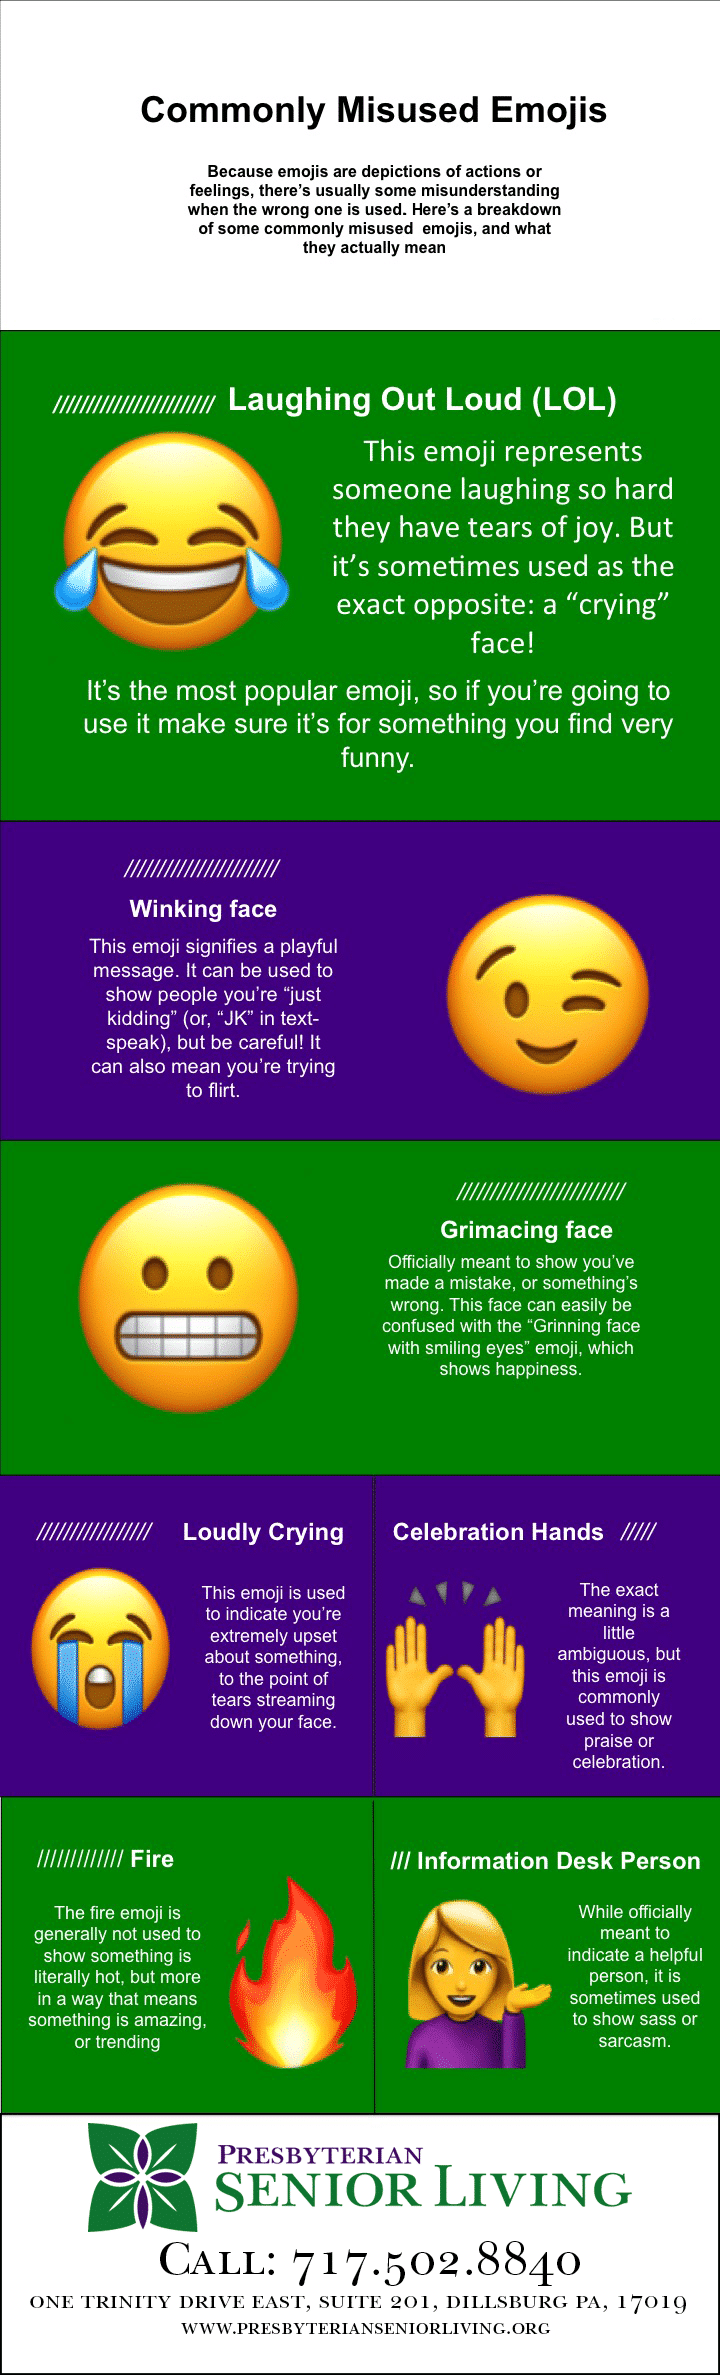 Misused emoji infographic final5.png